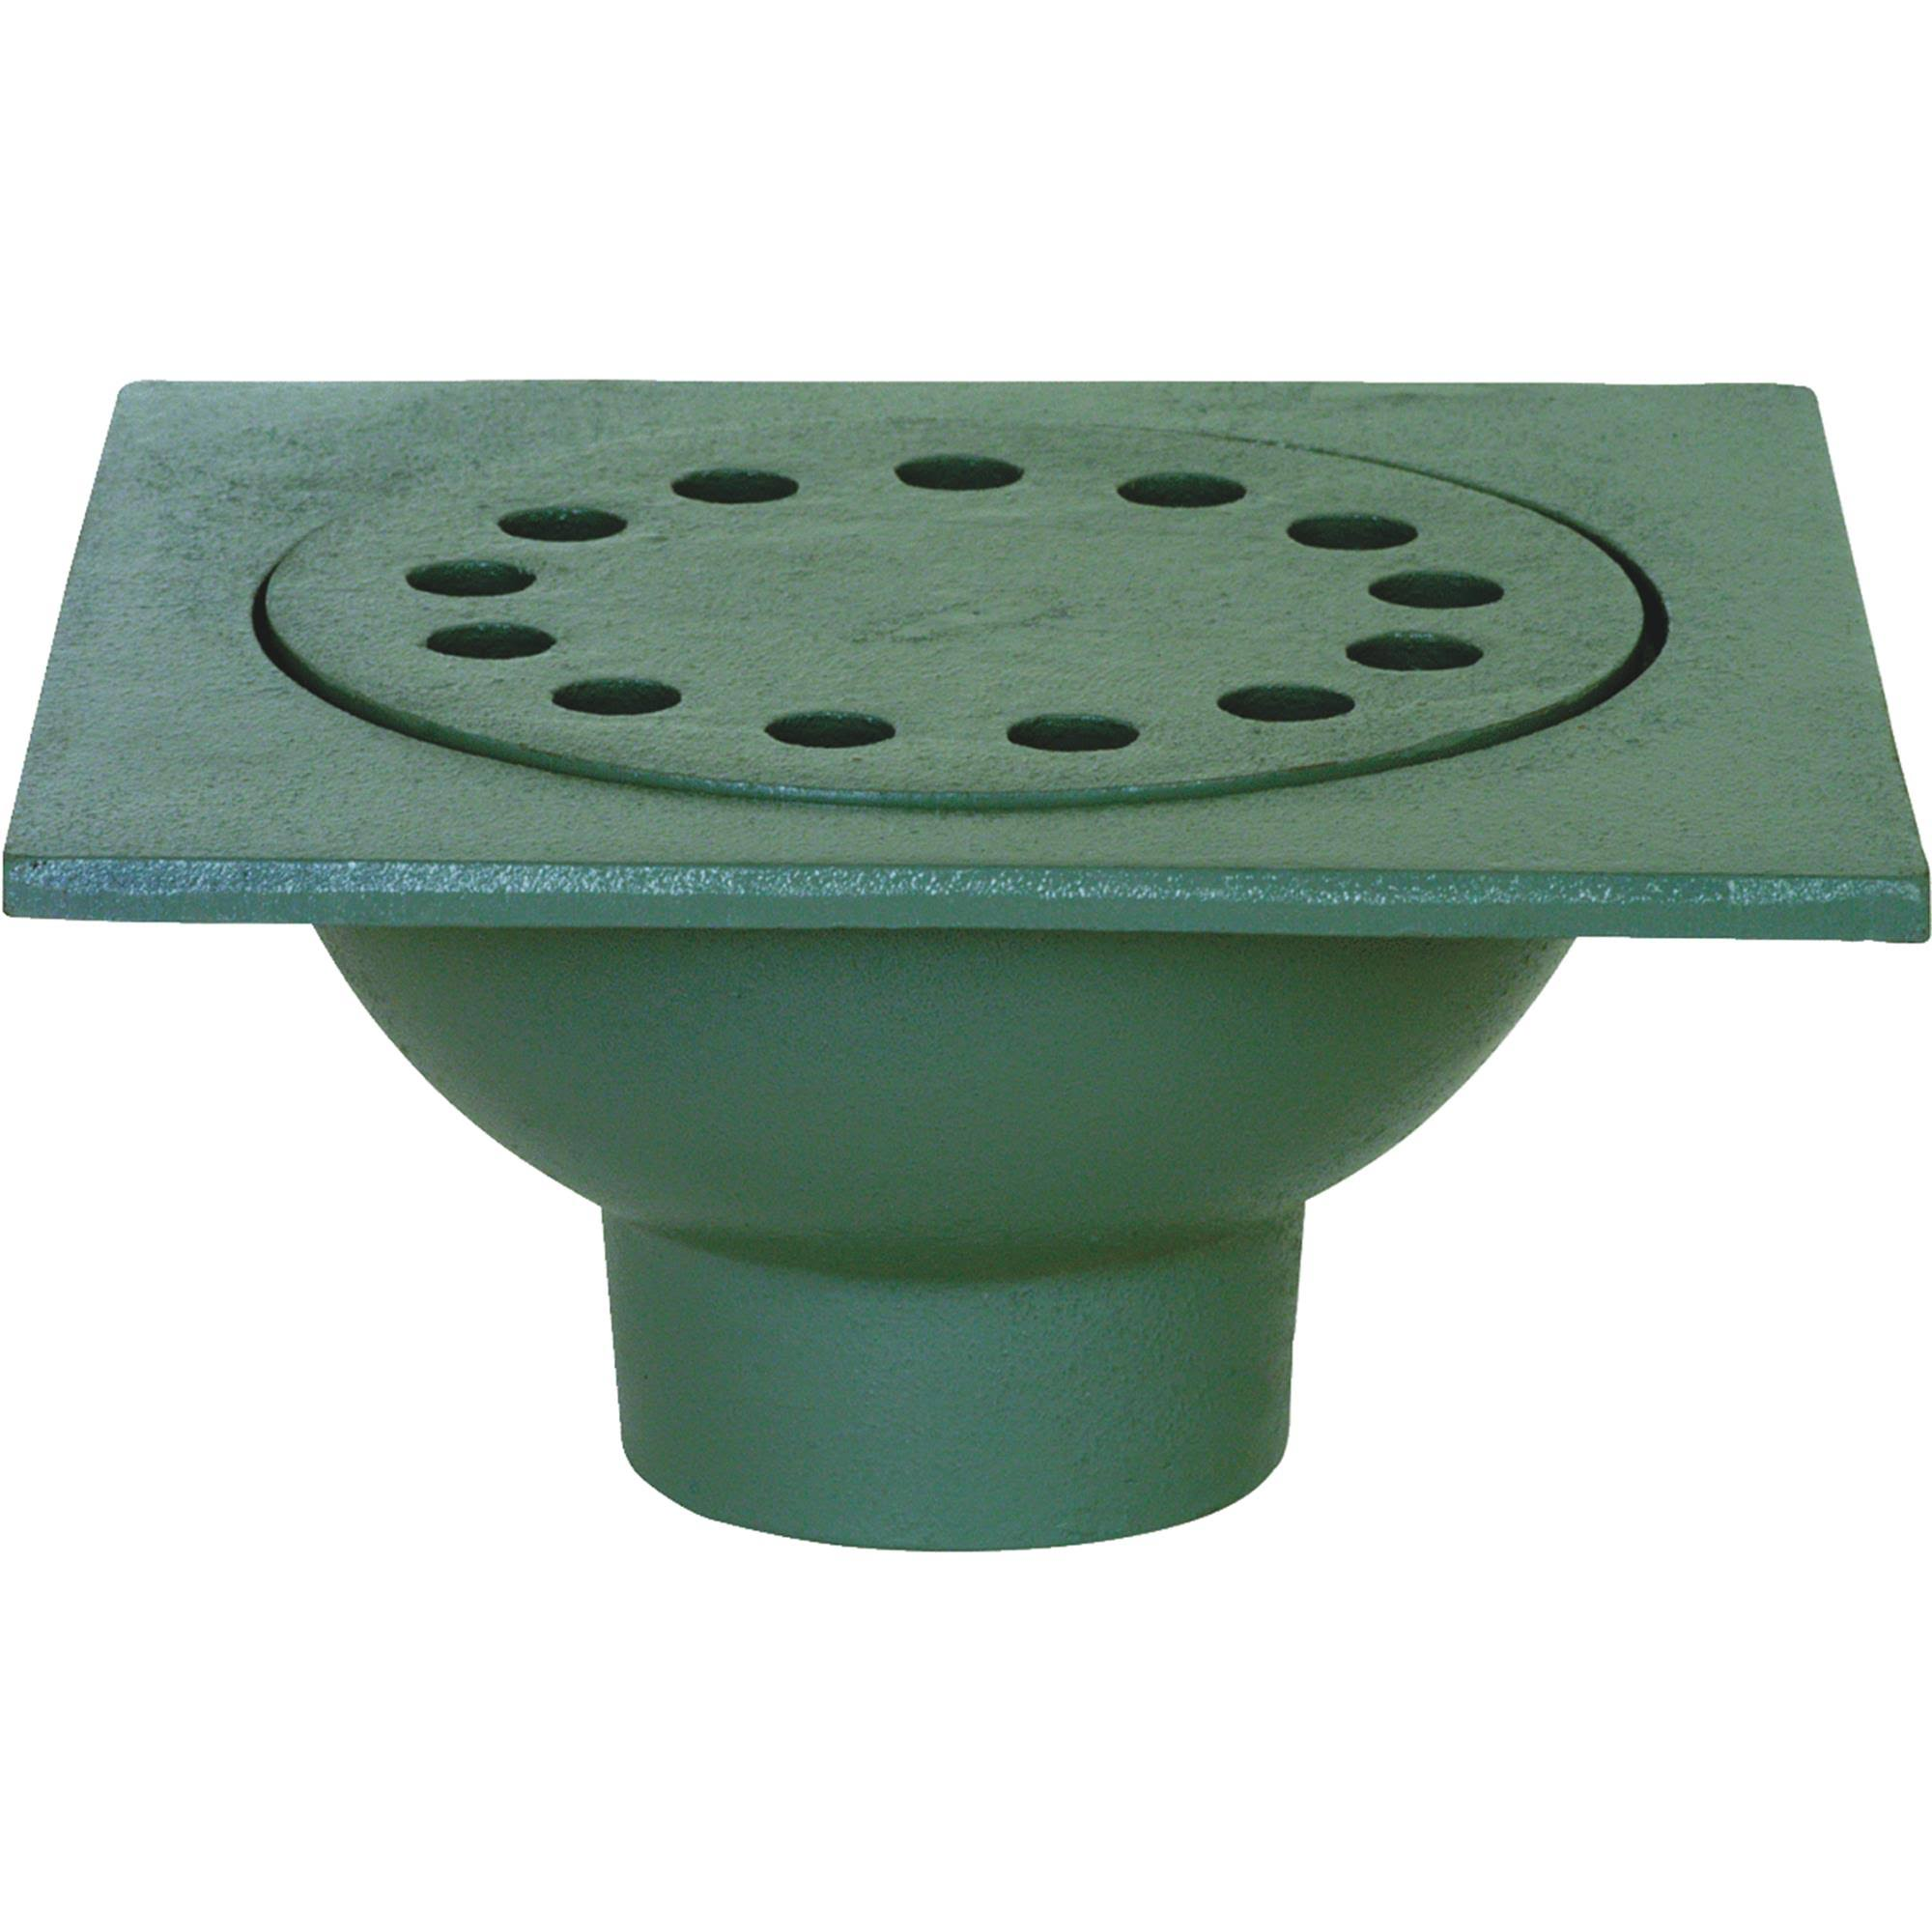 "Sioux Chief Bell Trap Drain - 9"" x 9"""